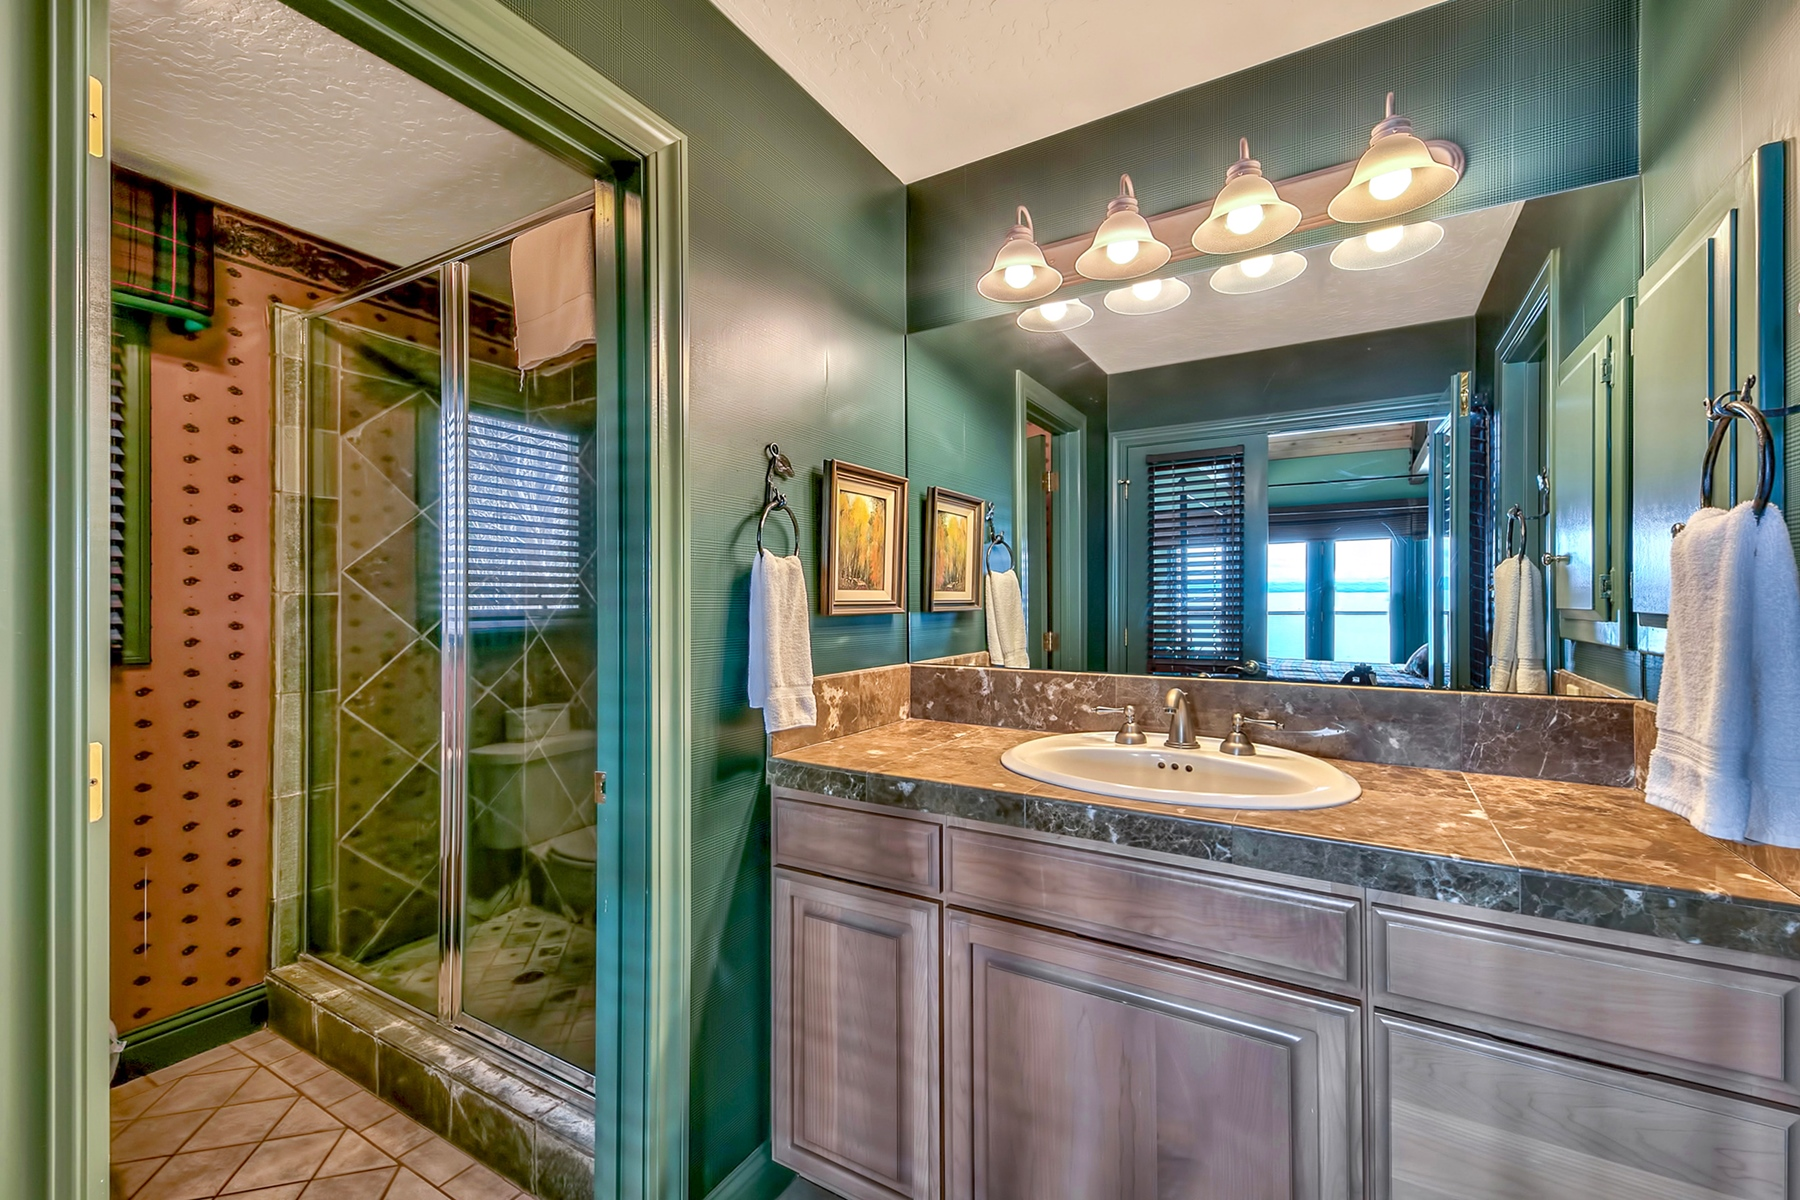 Additional photo for property listing at 501 Lakeshore Blvd. #54, Incline Village, Nevada 501 Lakeshore Blvd. #54 Incline Village, Nevada 89451 United States